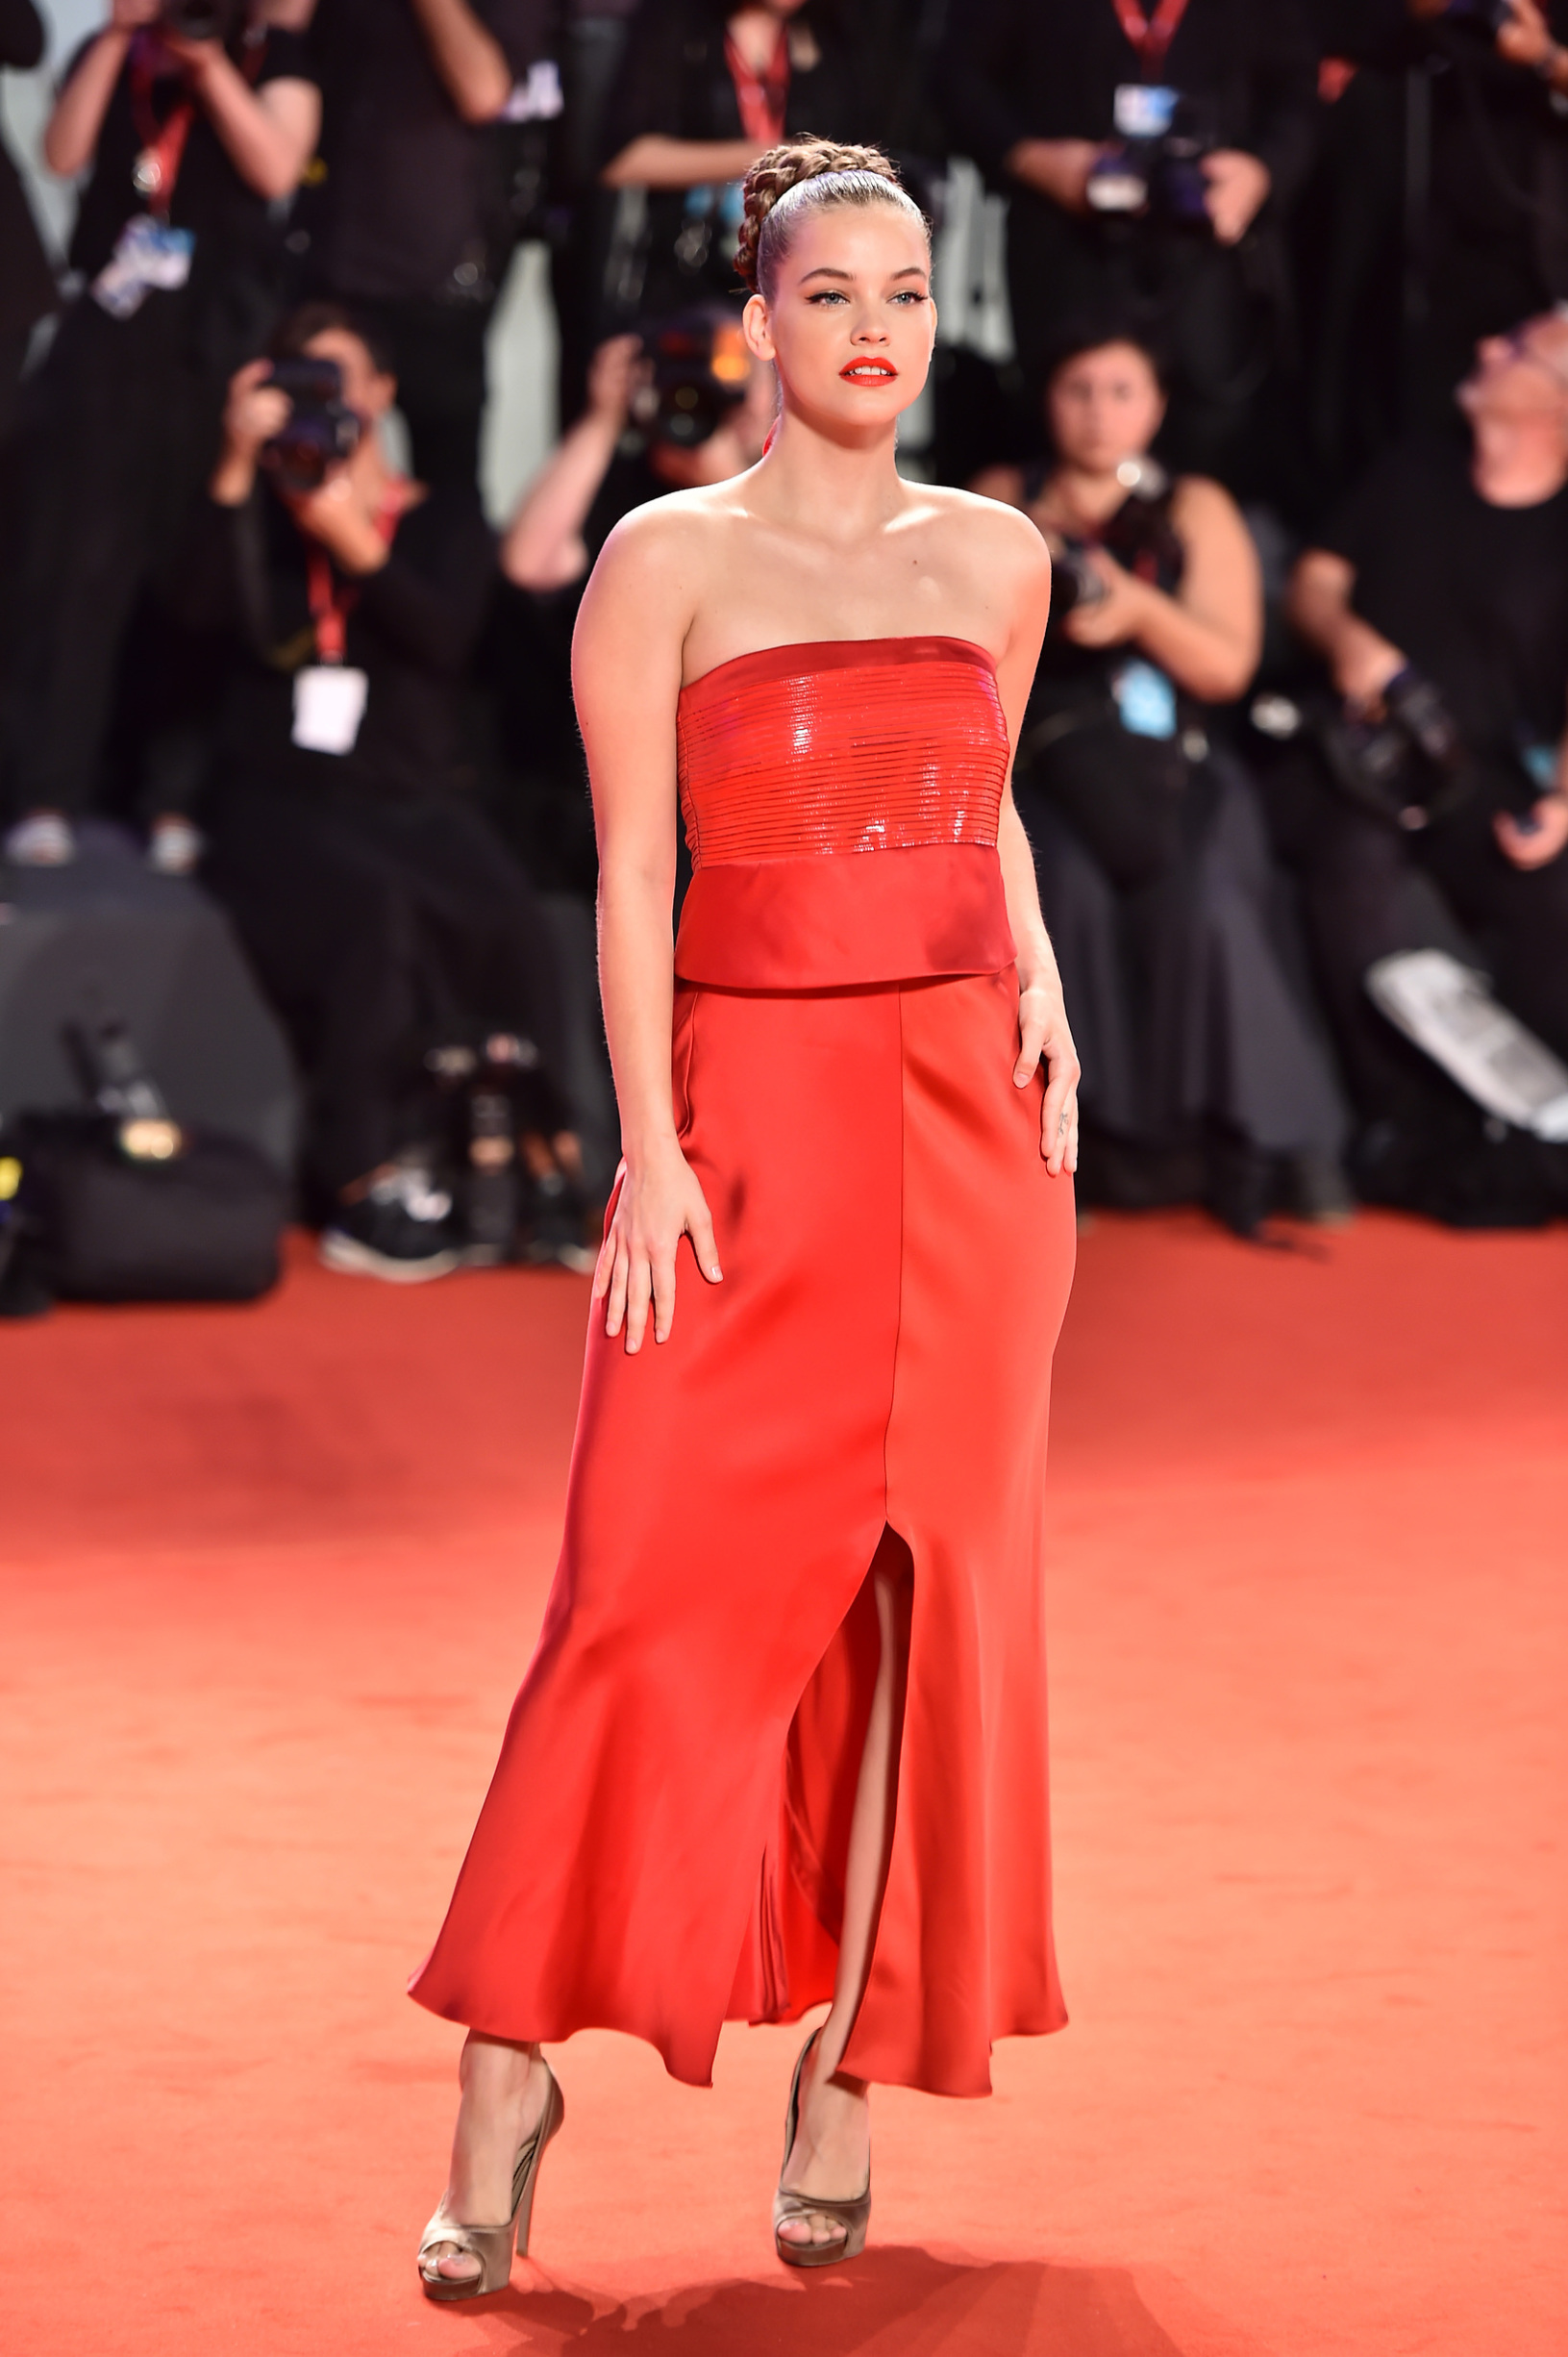 VENICE, ITALY - AUGUST 30:  Barbara Palvin walks the red carpet ahead of the